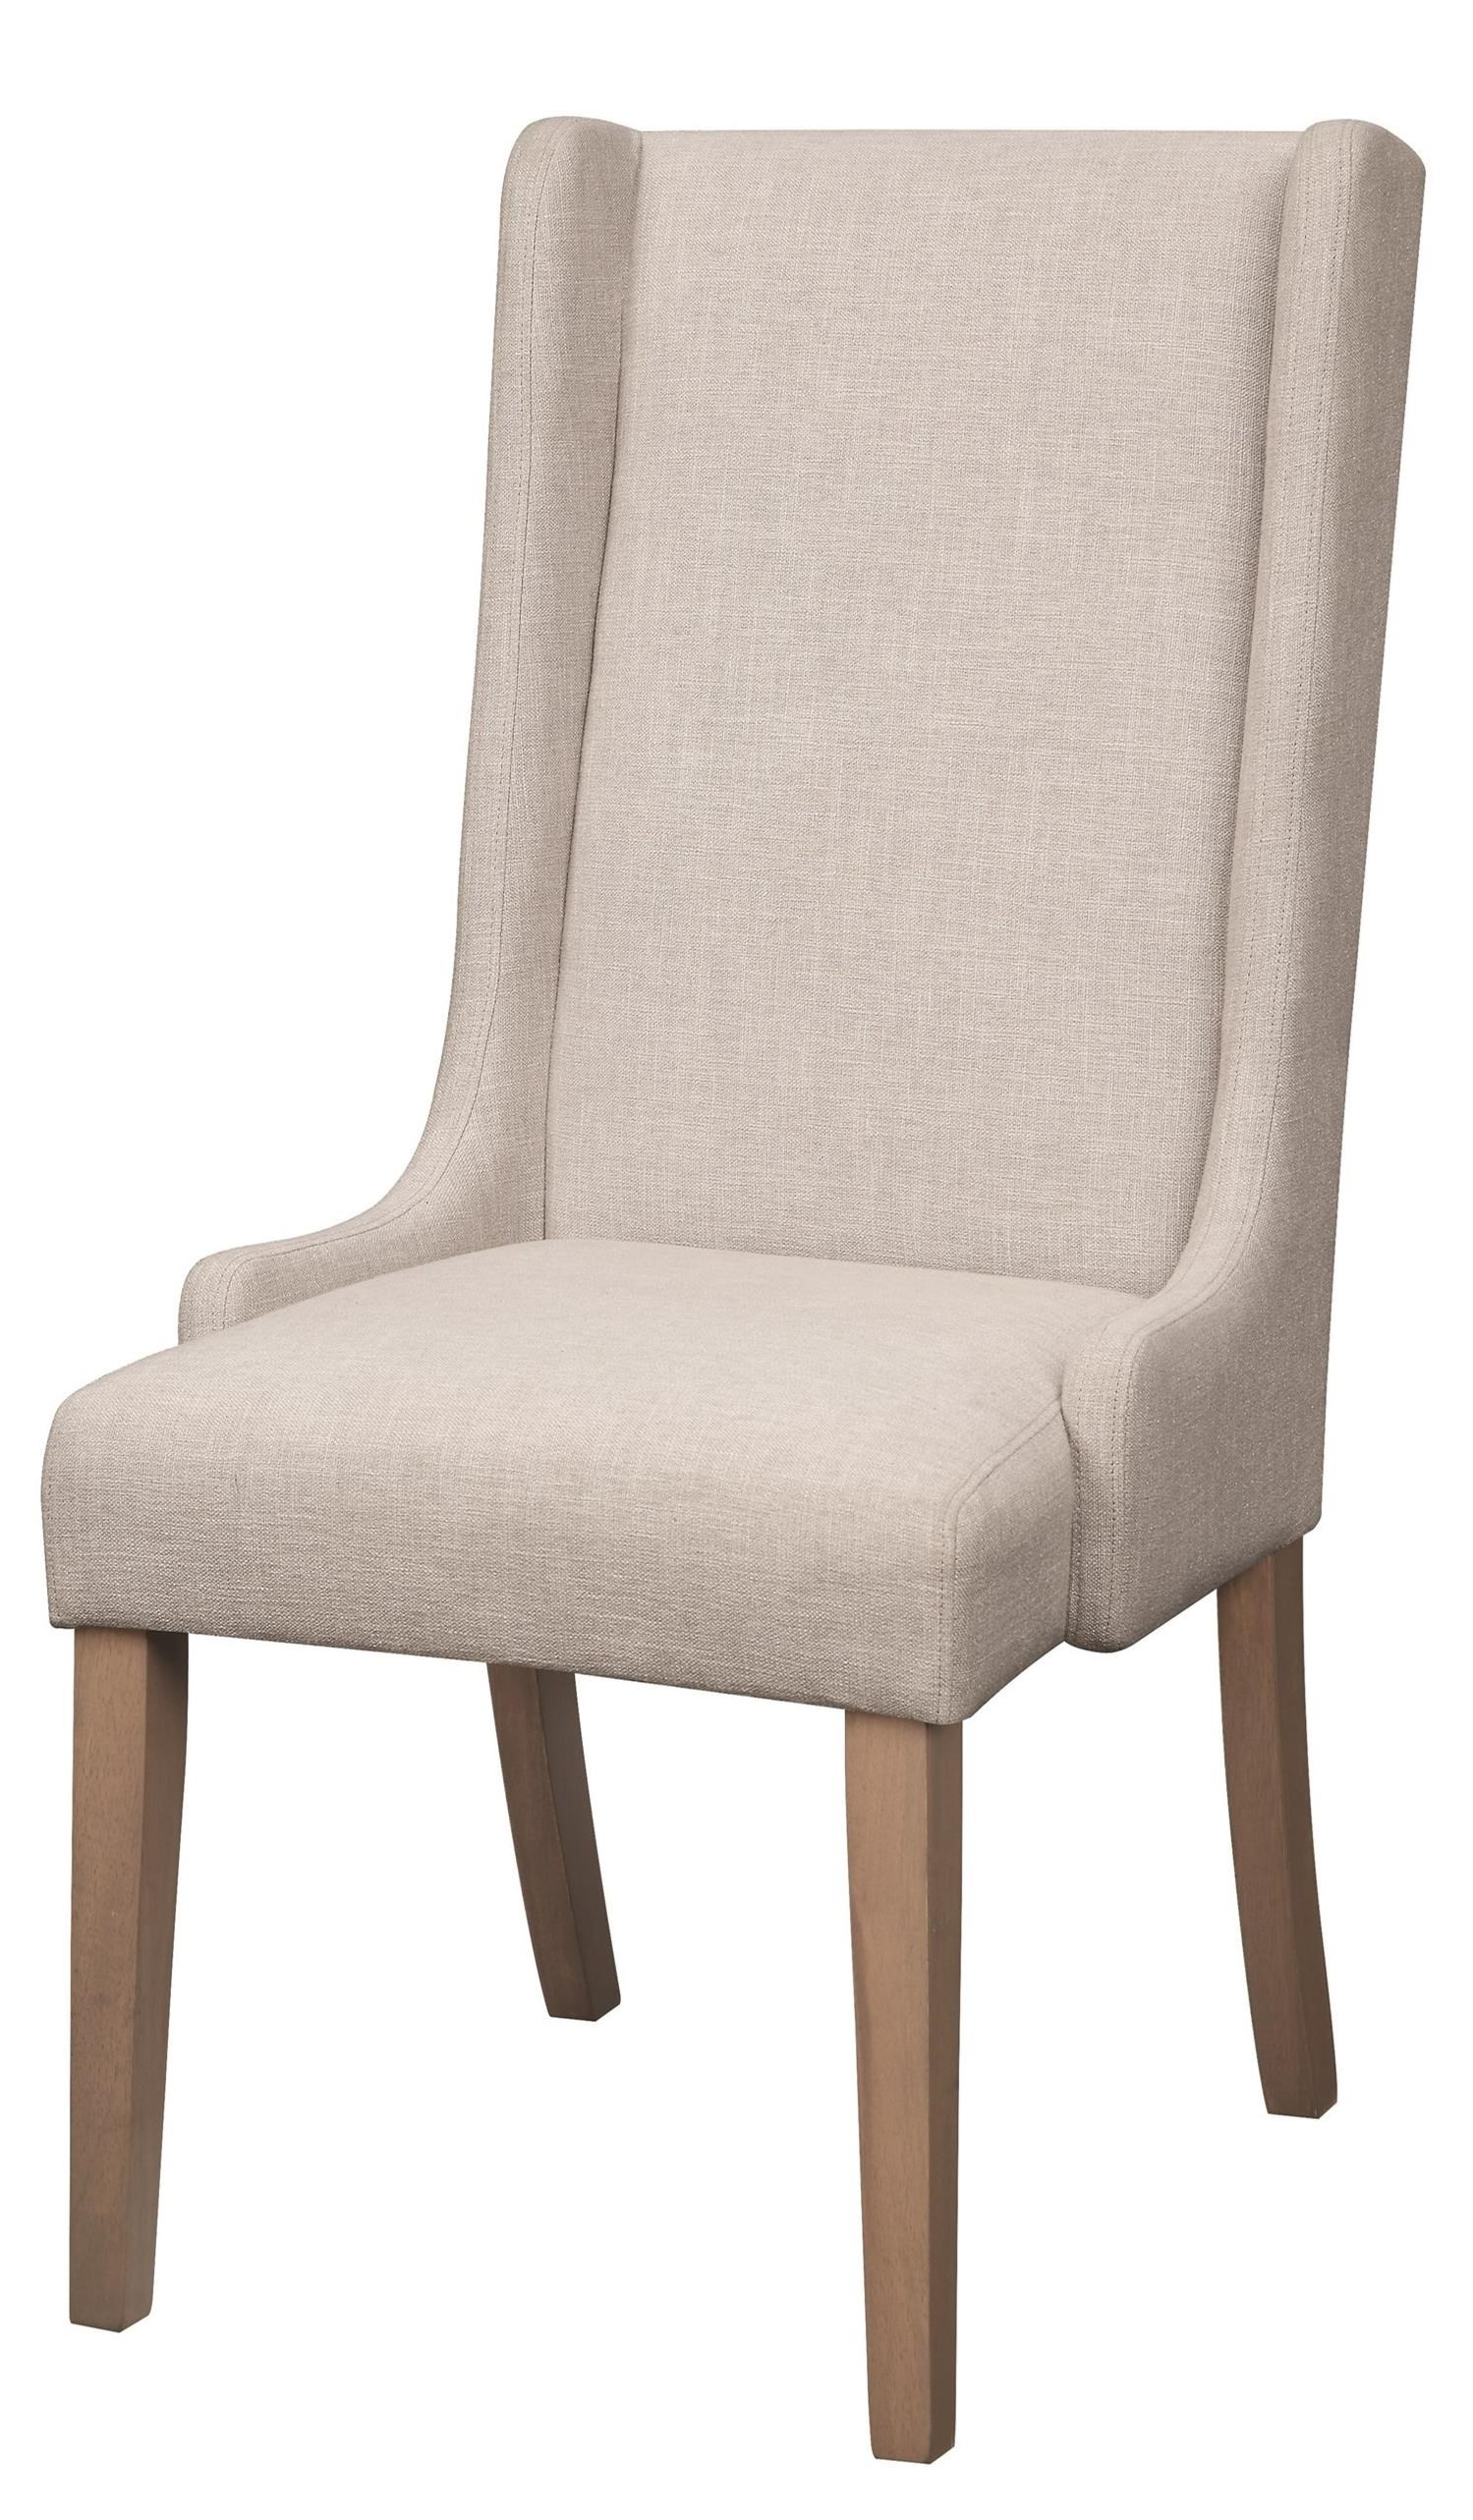 Wingback Dining Room Chairs Dining Chairs And Bar Stools Upholstered Wingback Dining Chair By Coaster At Prime Brothers Furniture